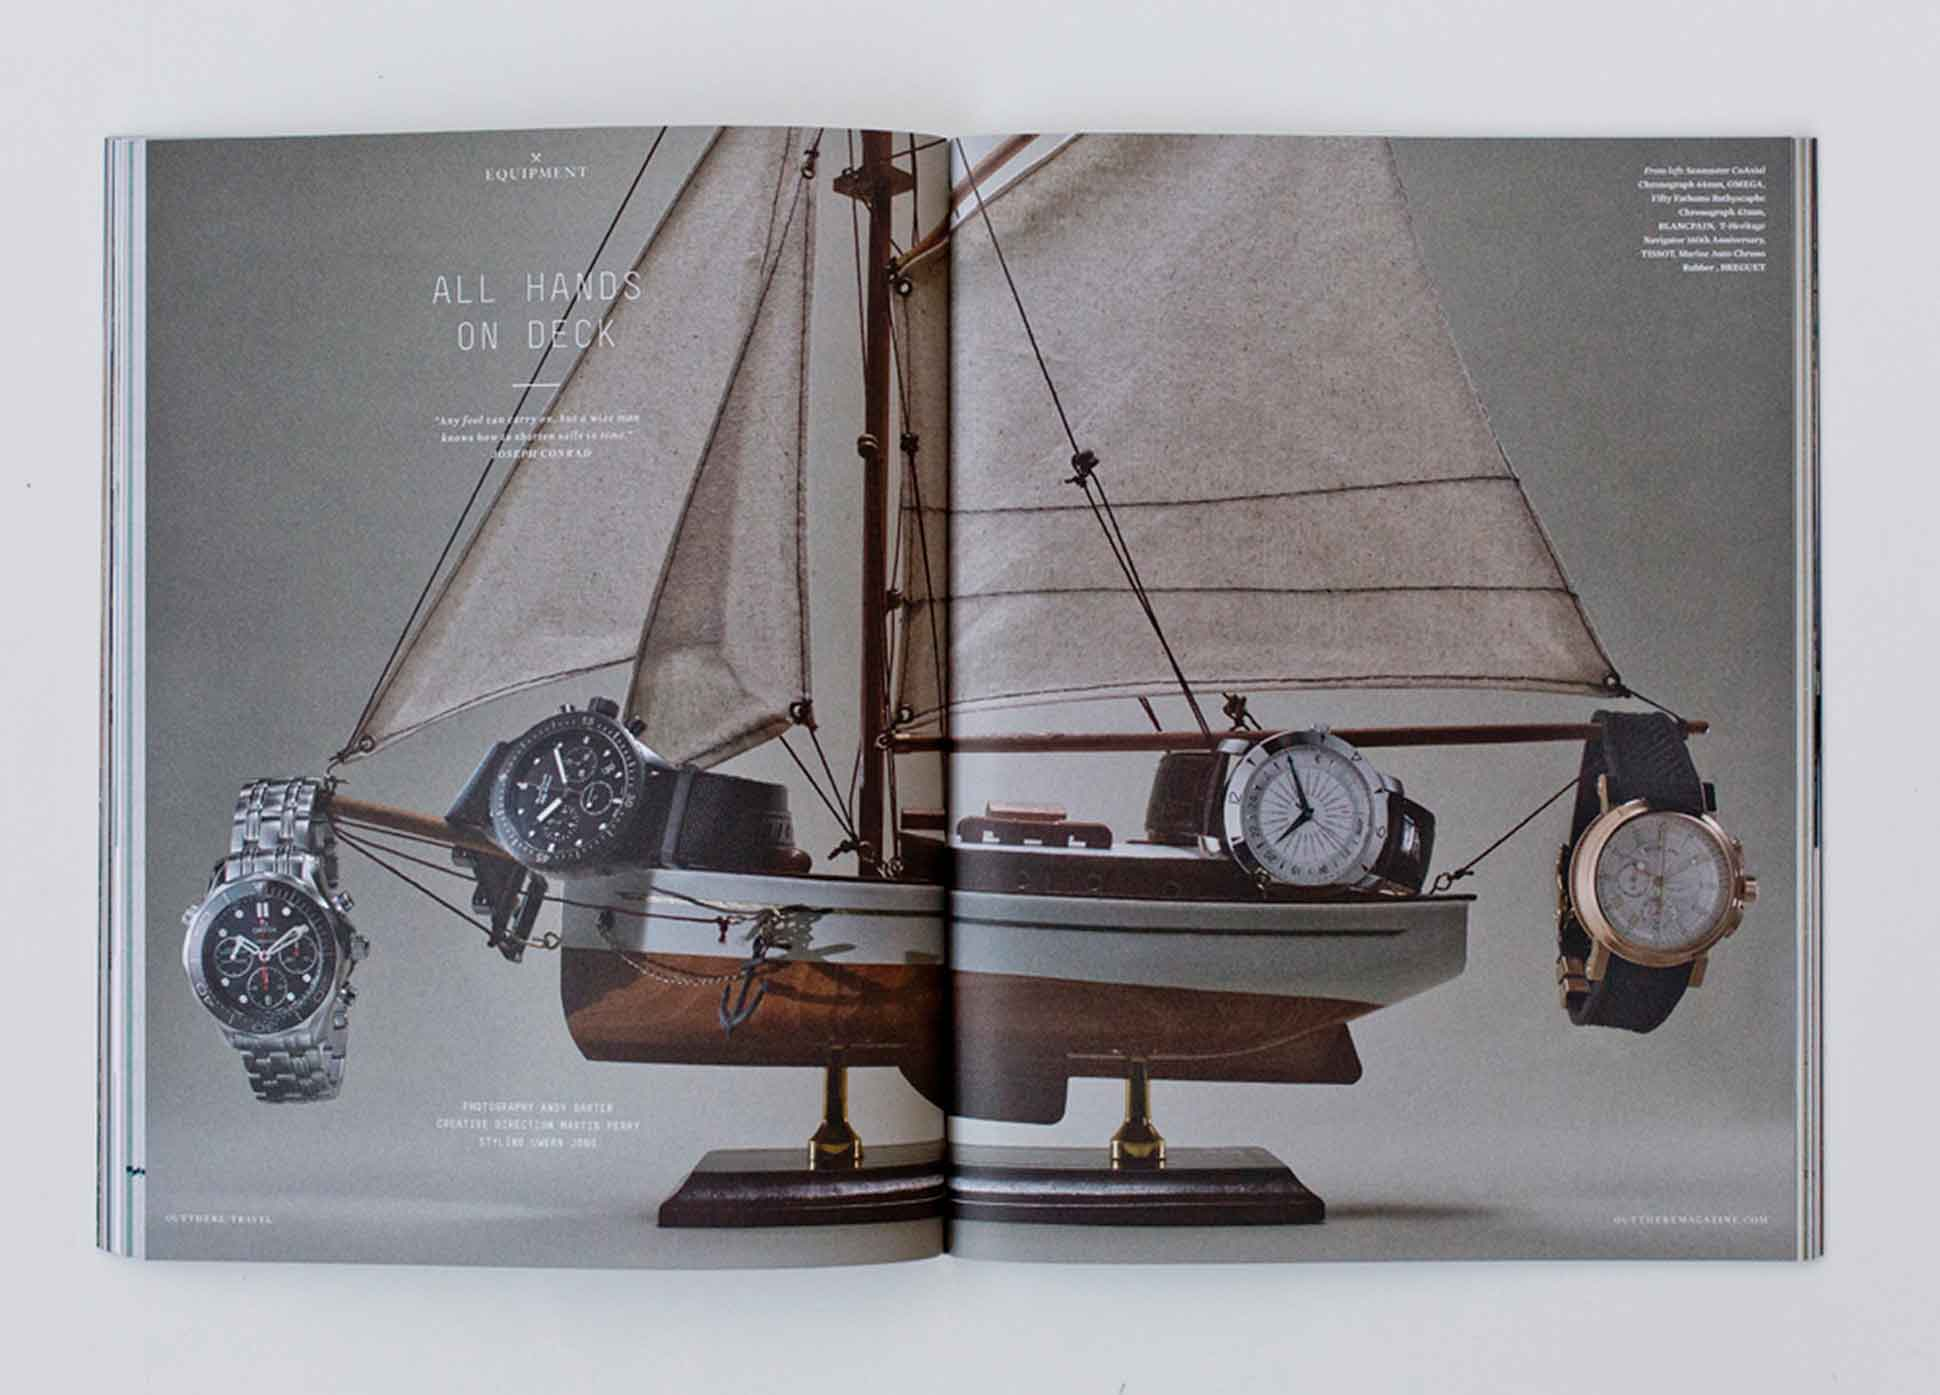 OutThere/Travel Great British Issue preview - watches Tissot, Omega, Breguet, Blancpain